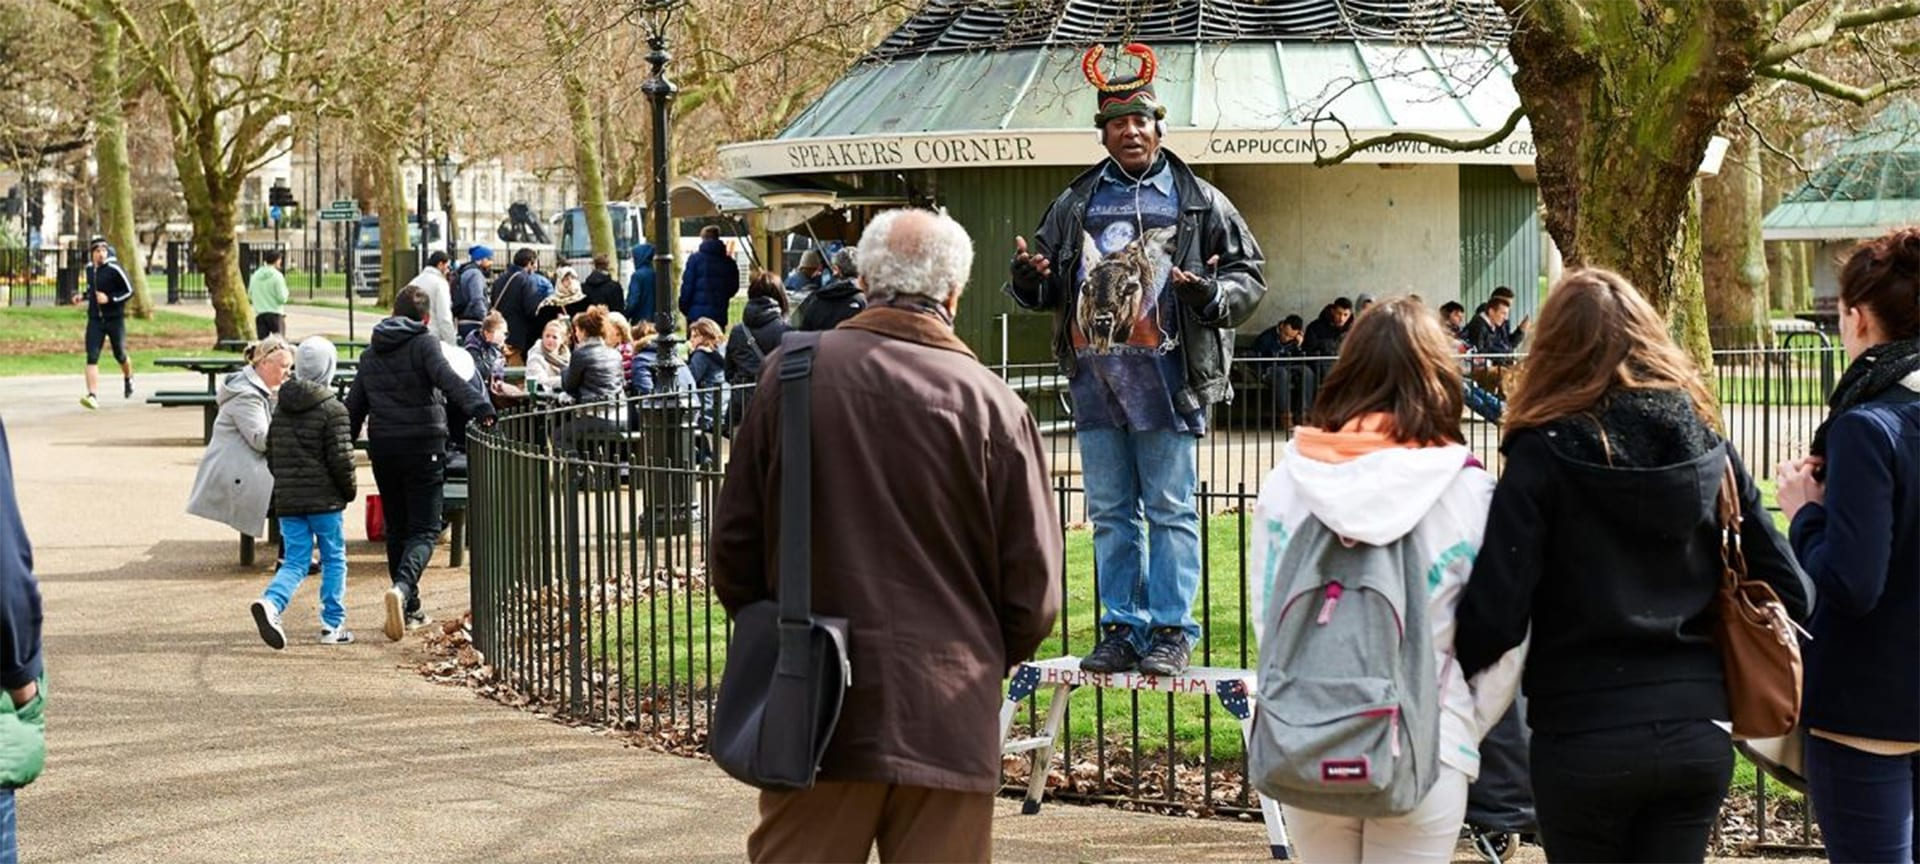 Speakers' Corner is a traditional site for public speeches and debates since the mid 1800s when protests and demonstrations took place in Hyde Park. The speaking area of Hyde Park as defined in legislation extends far beyond Speakers Corner but it is here where most people congregate.